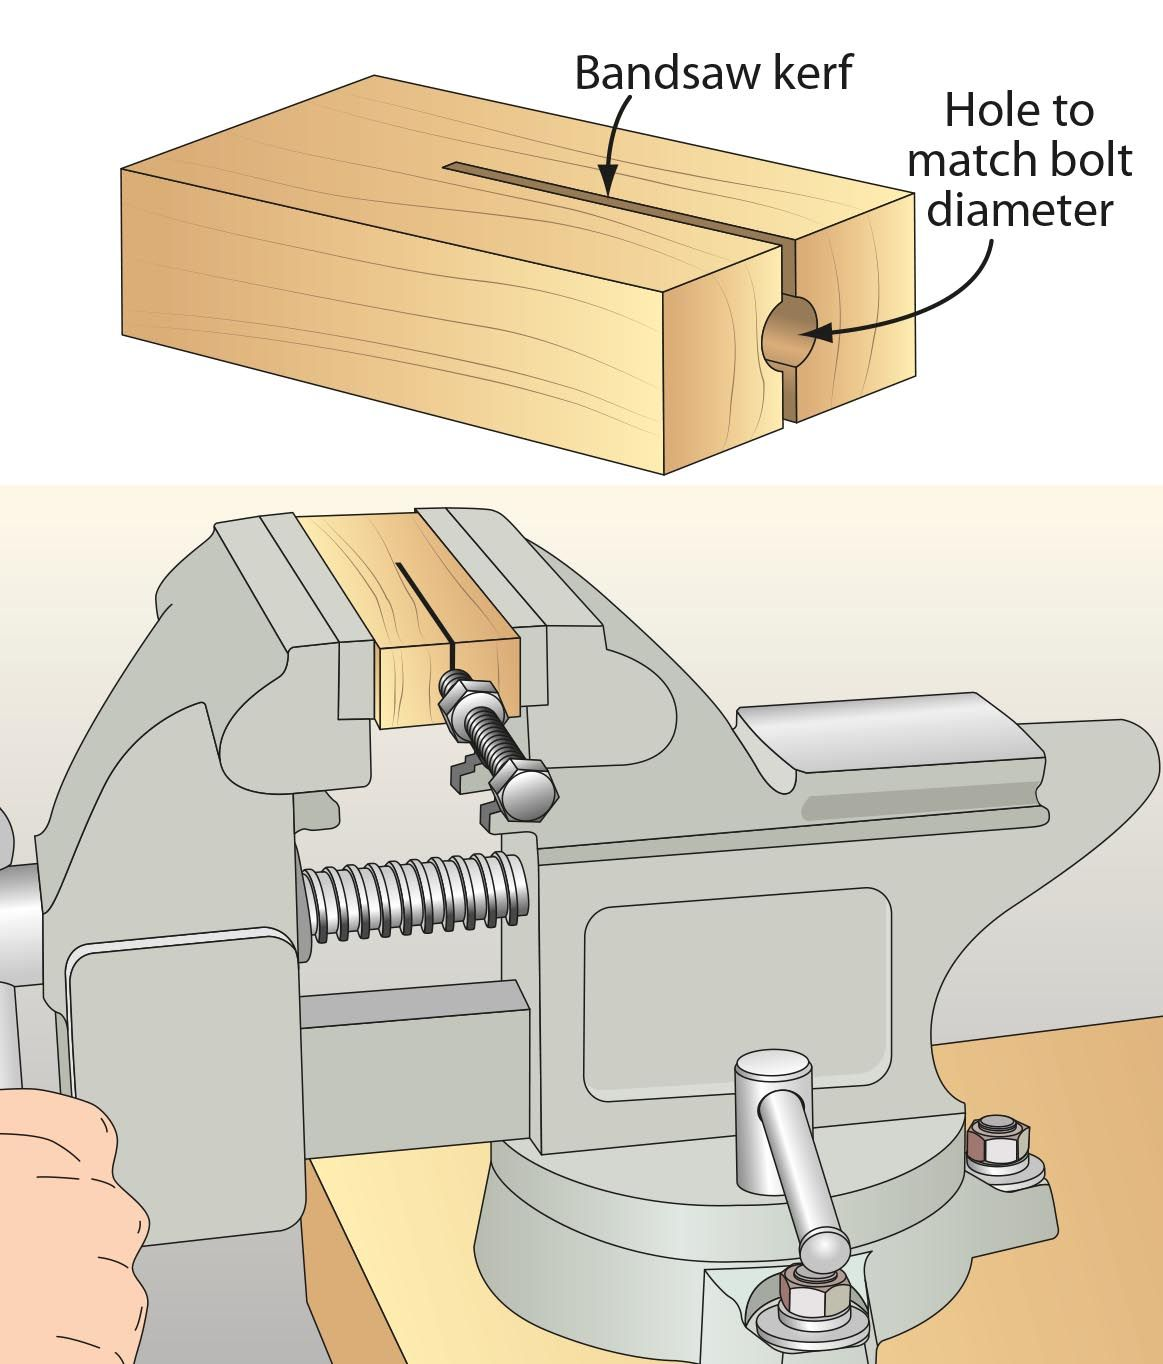 how to cut threads on a bolt